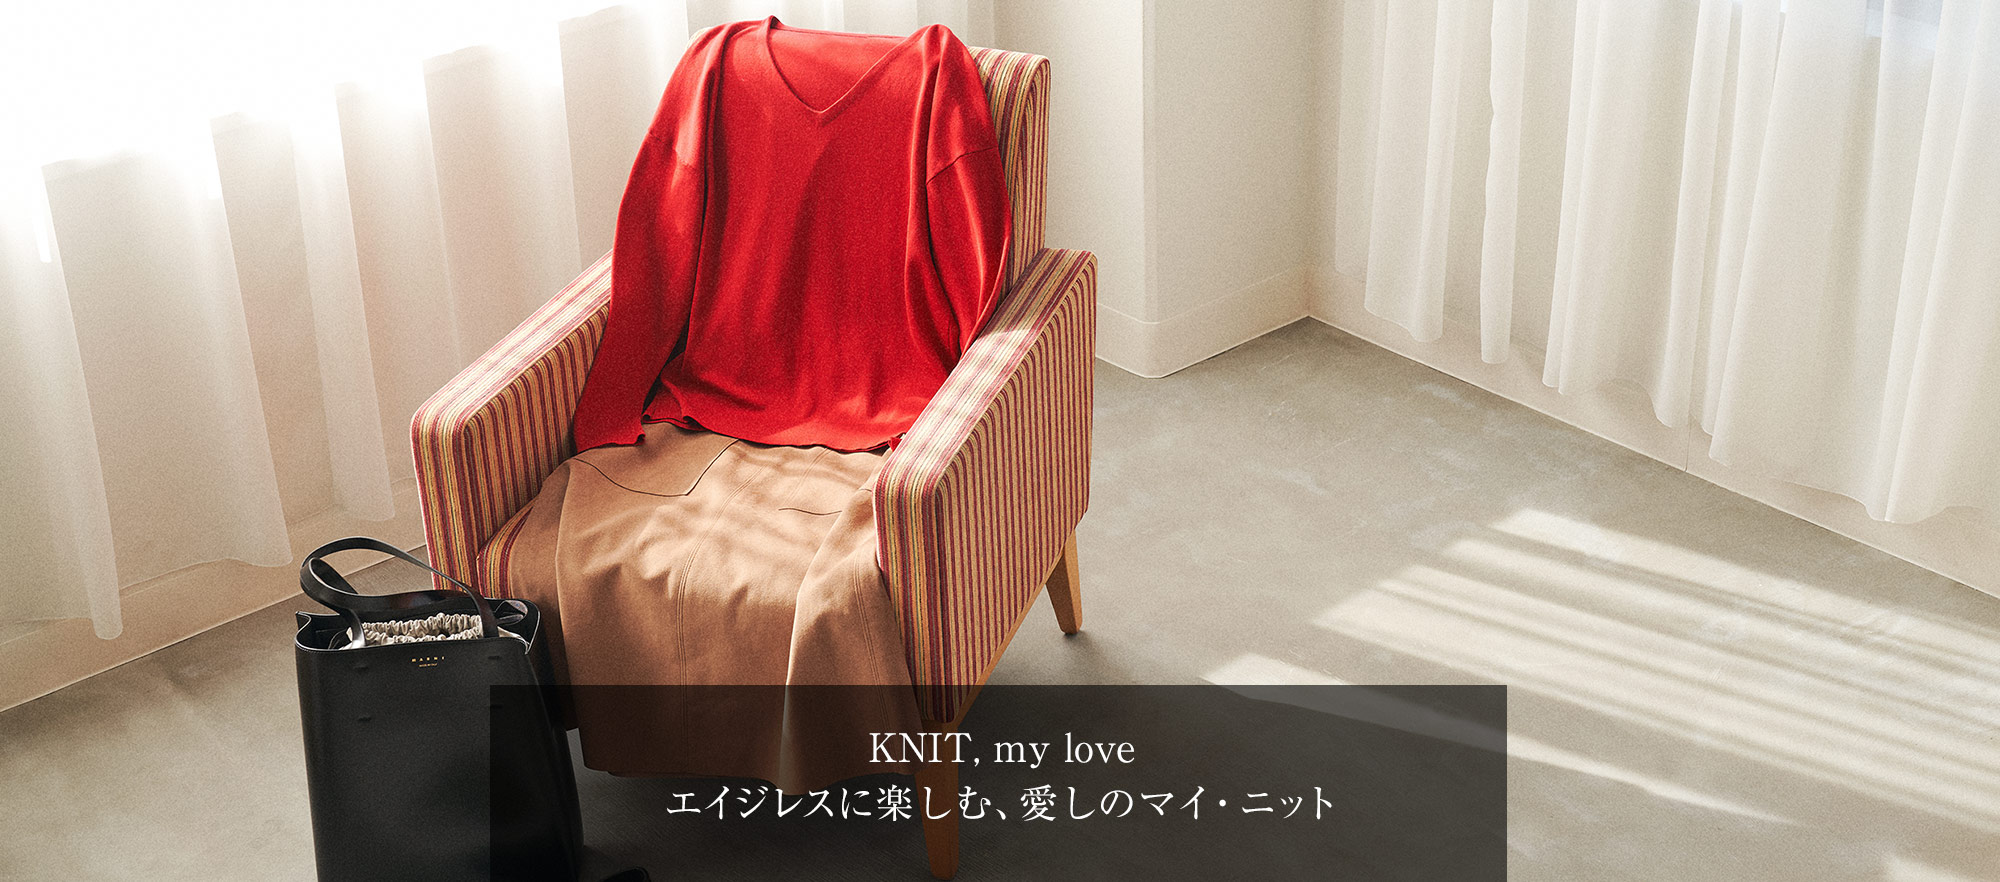 KNIT, my love